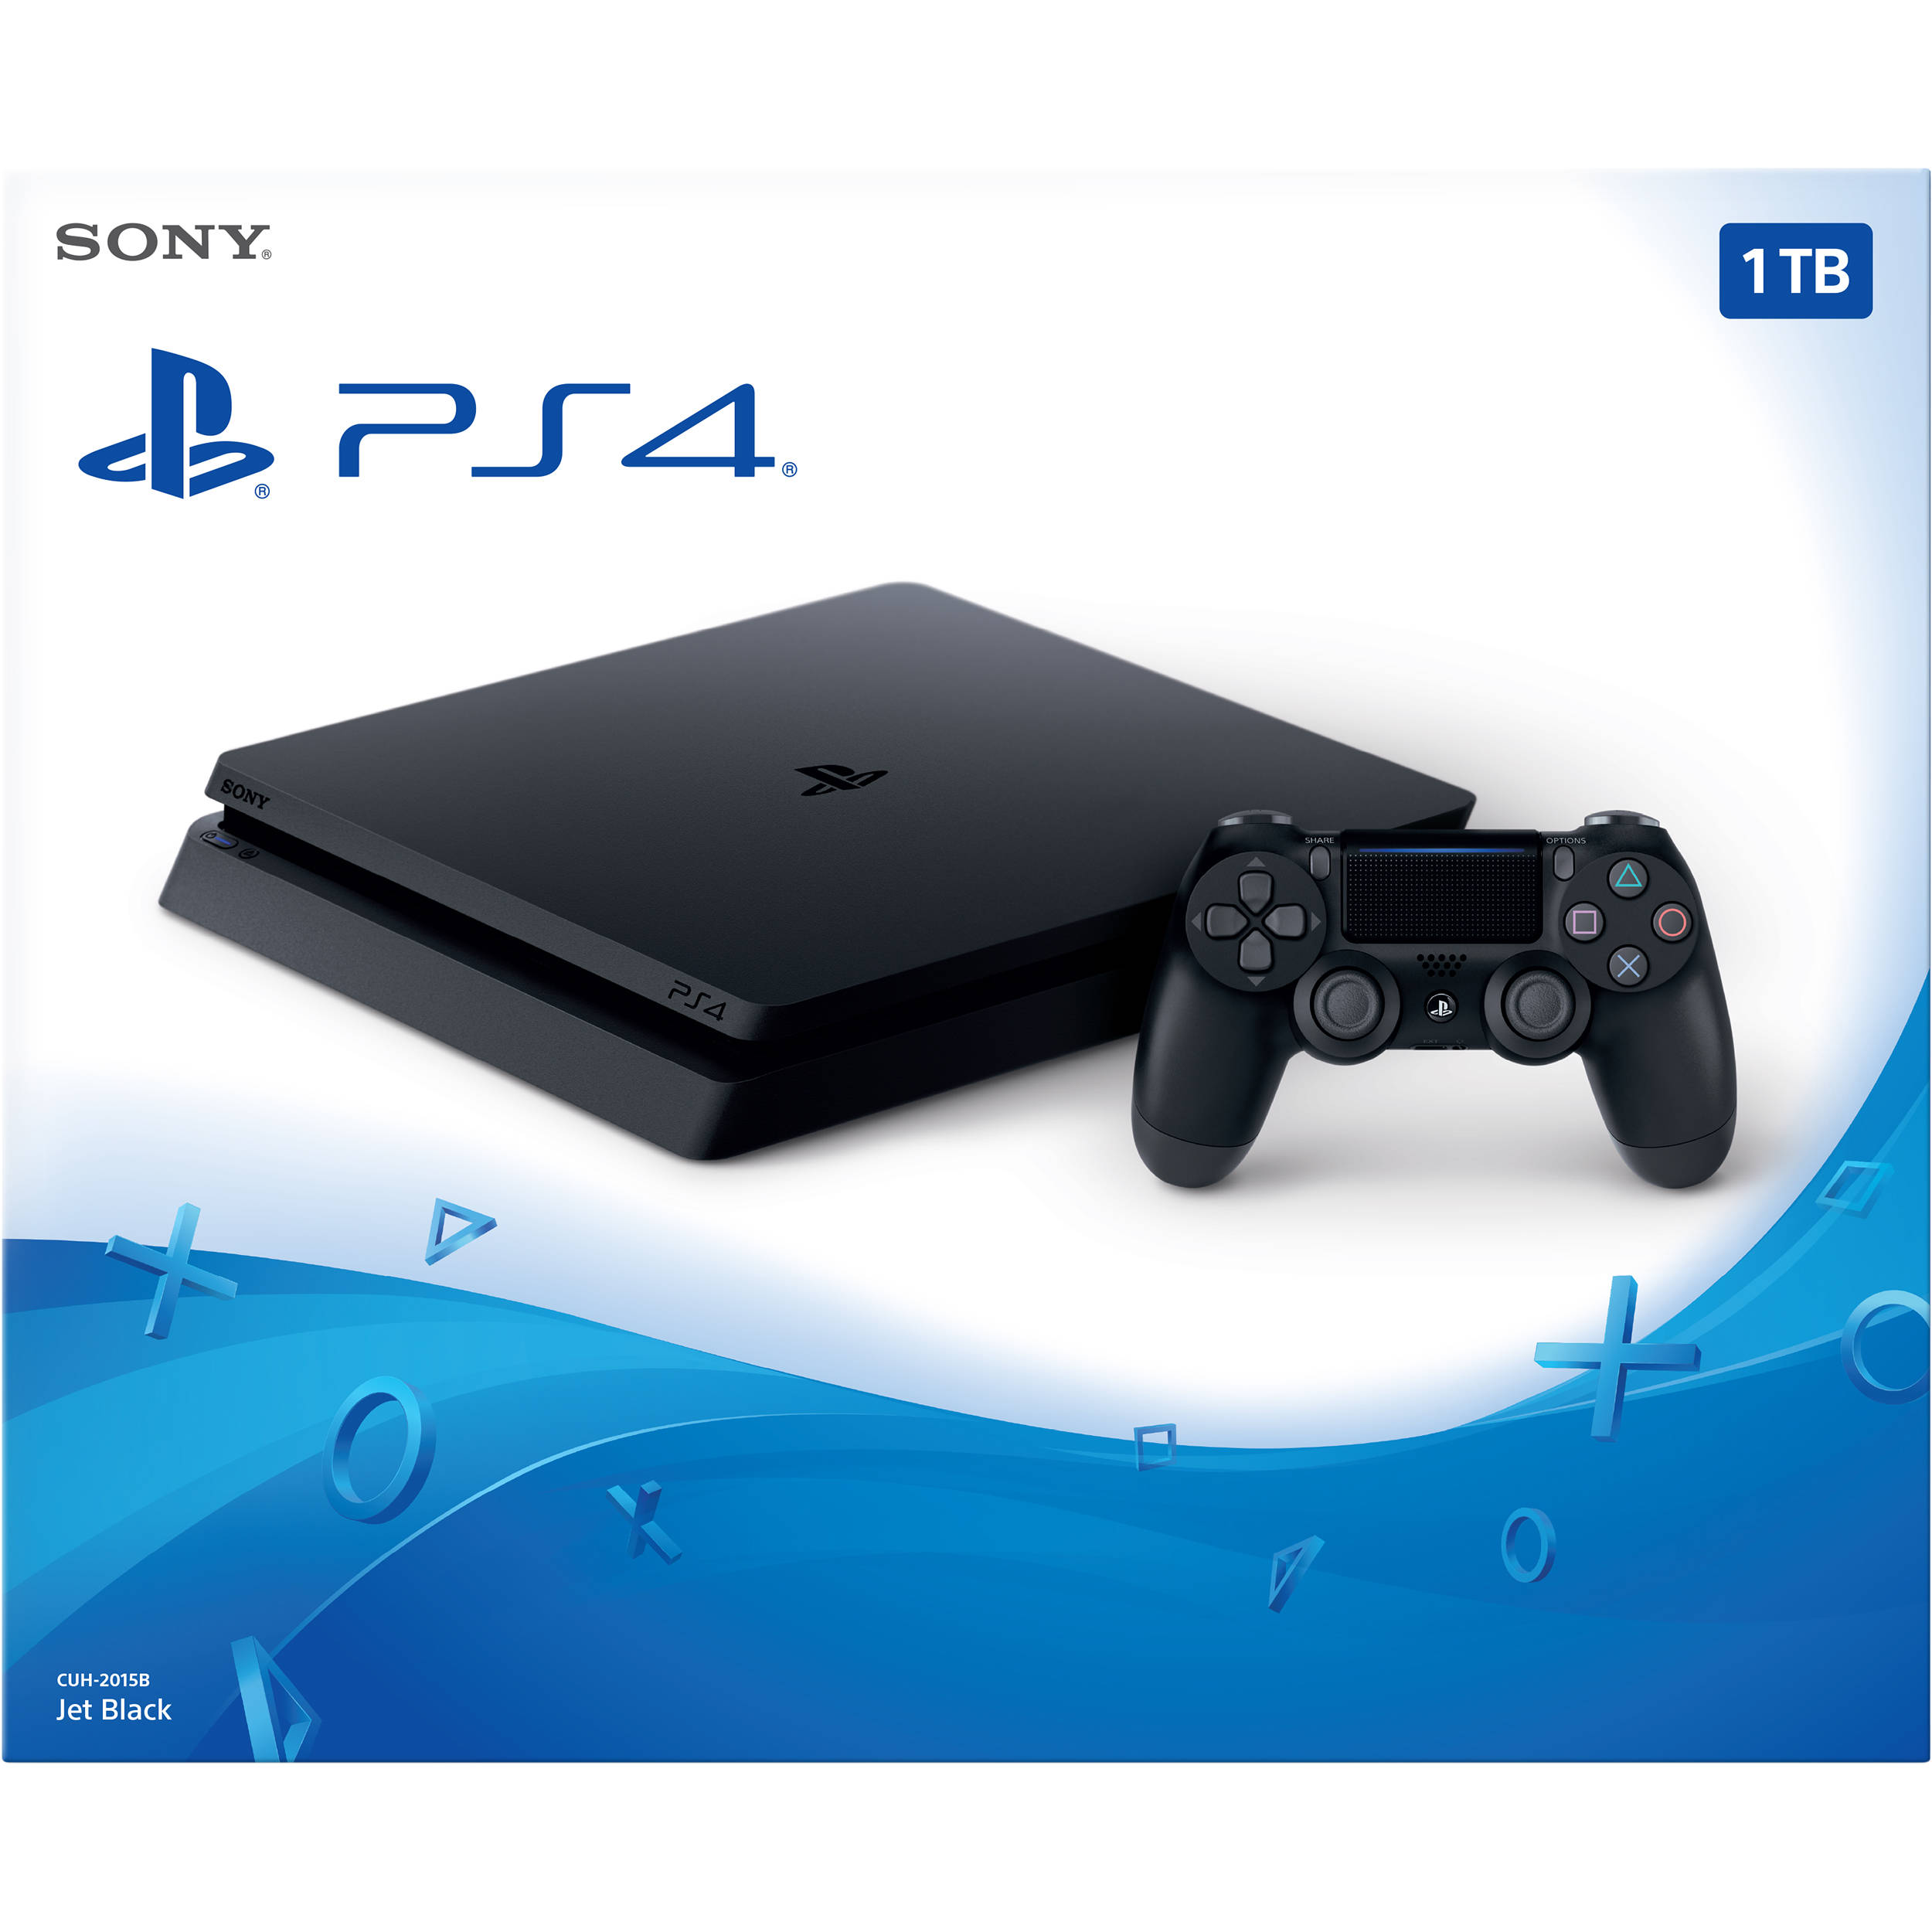 SONY PLAYSTATION 4 DRIVER WINDOWS